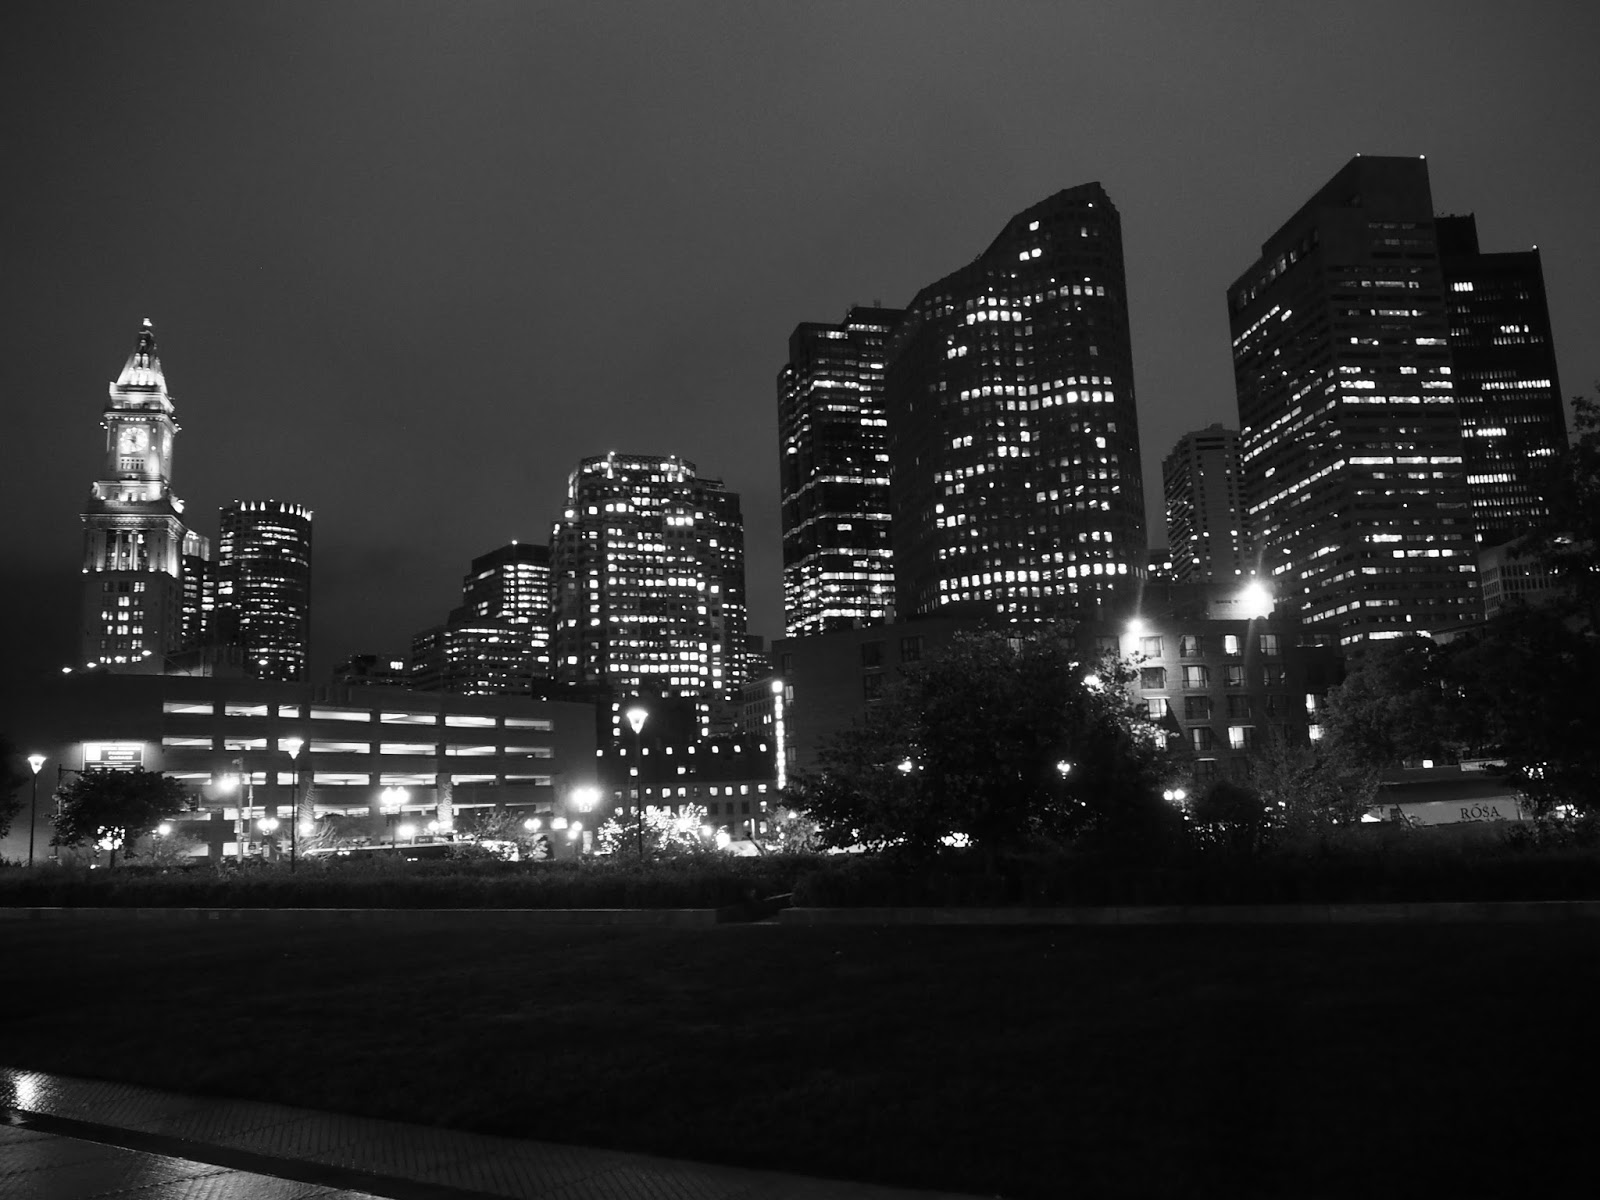 Boston skyline at night - how to spend 36 hours in Boston